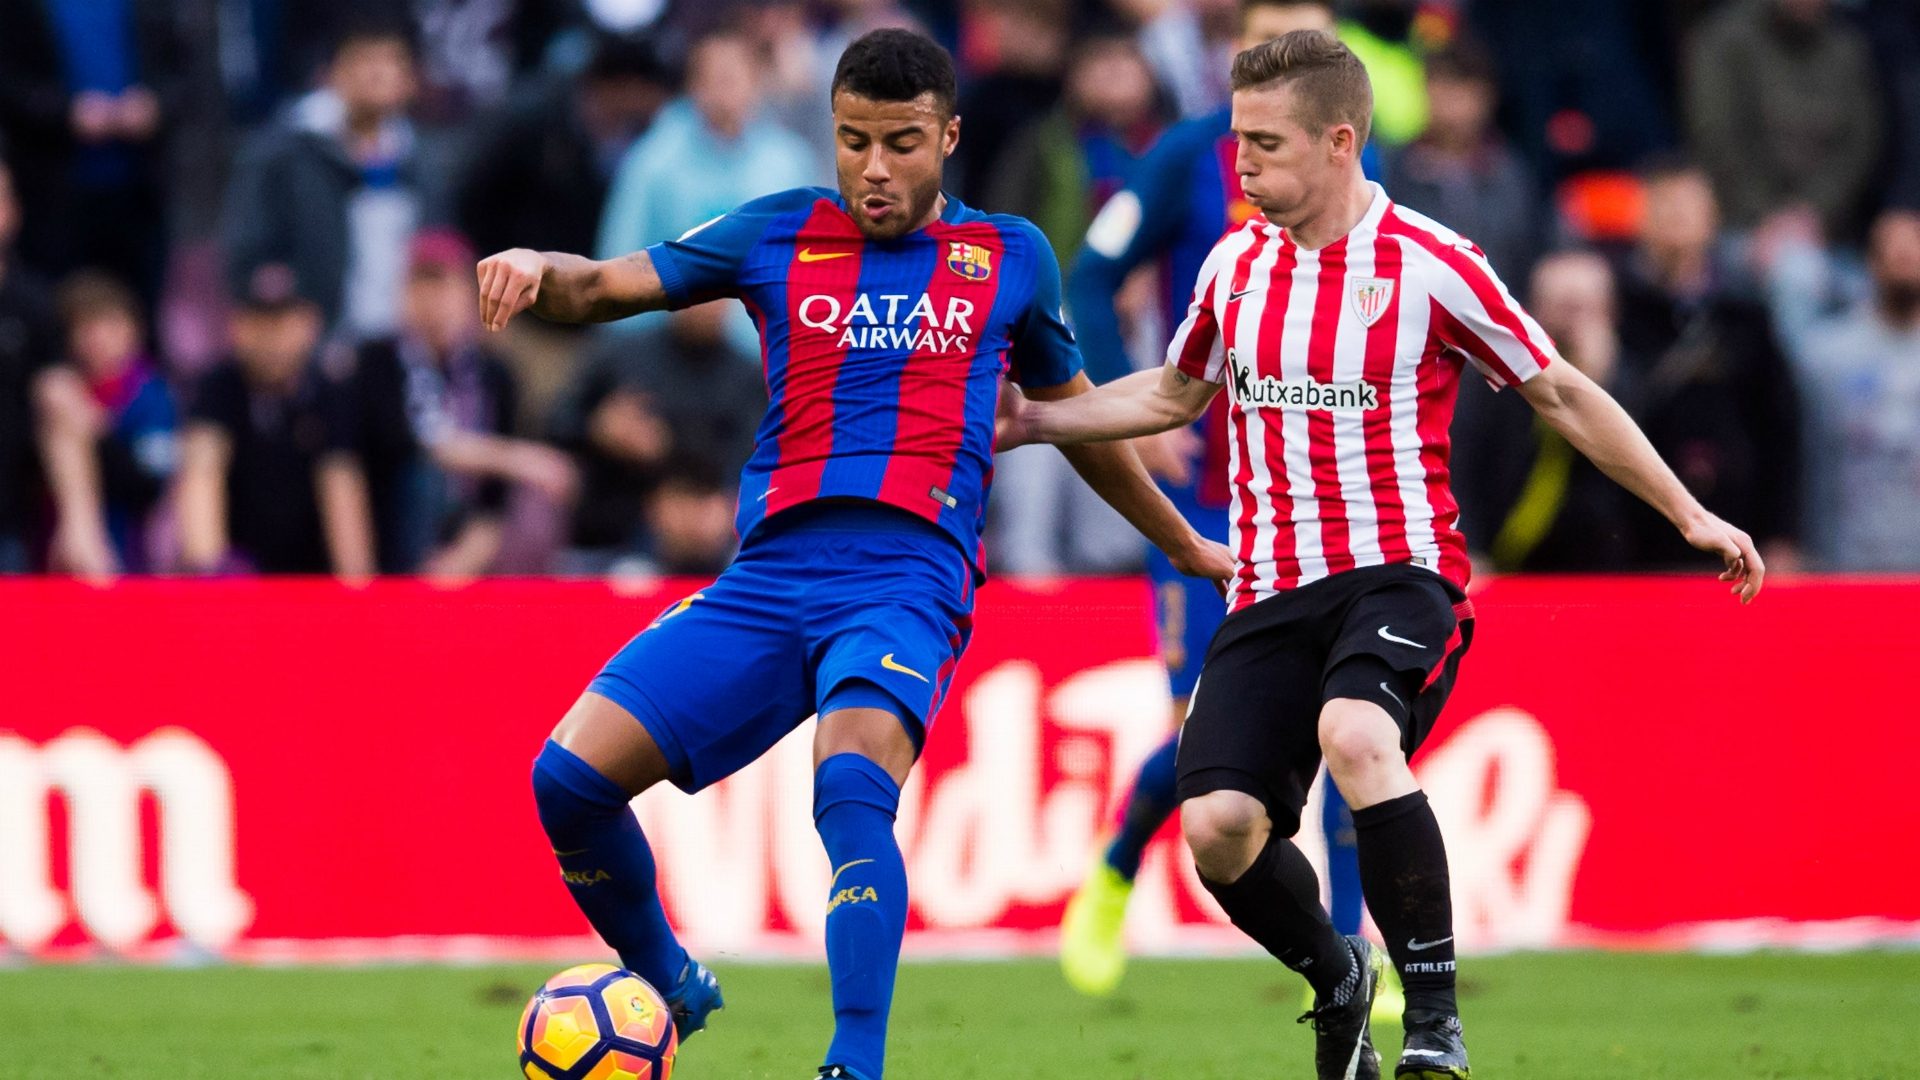 Real Madrid & Barcelona January transfer news LIVE: Neymar, Hazard